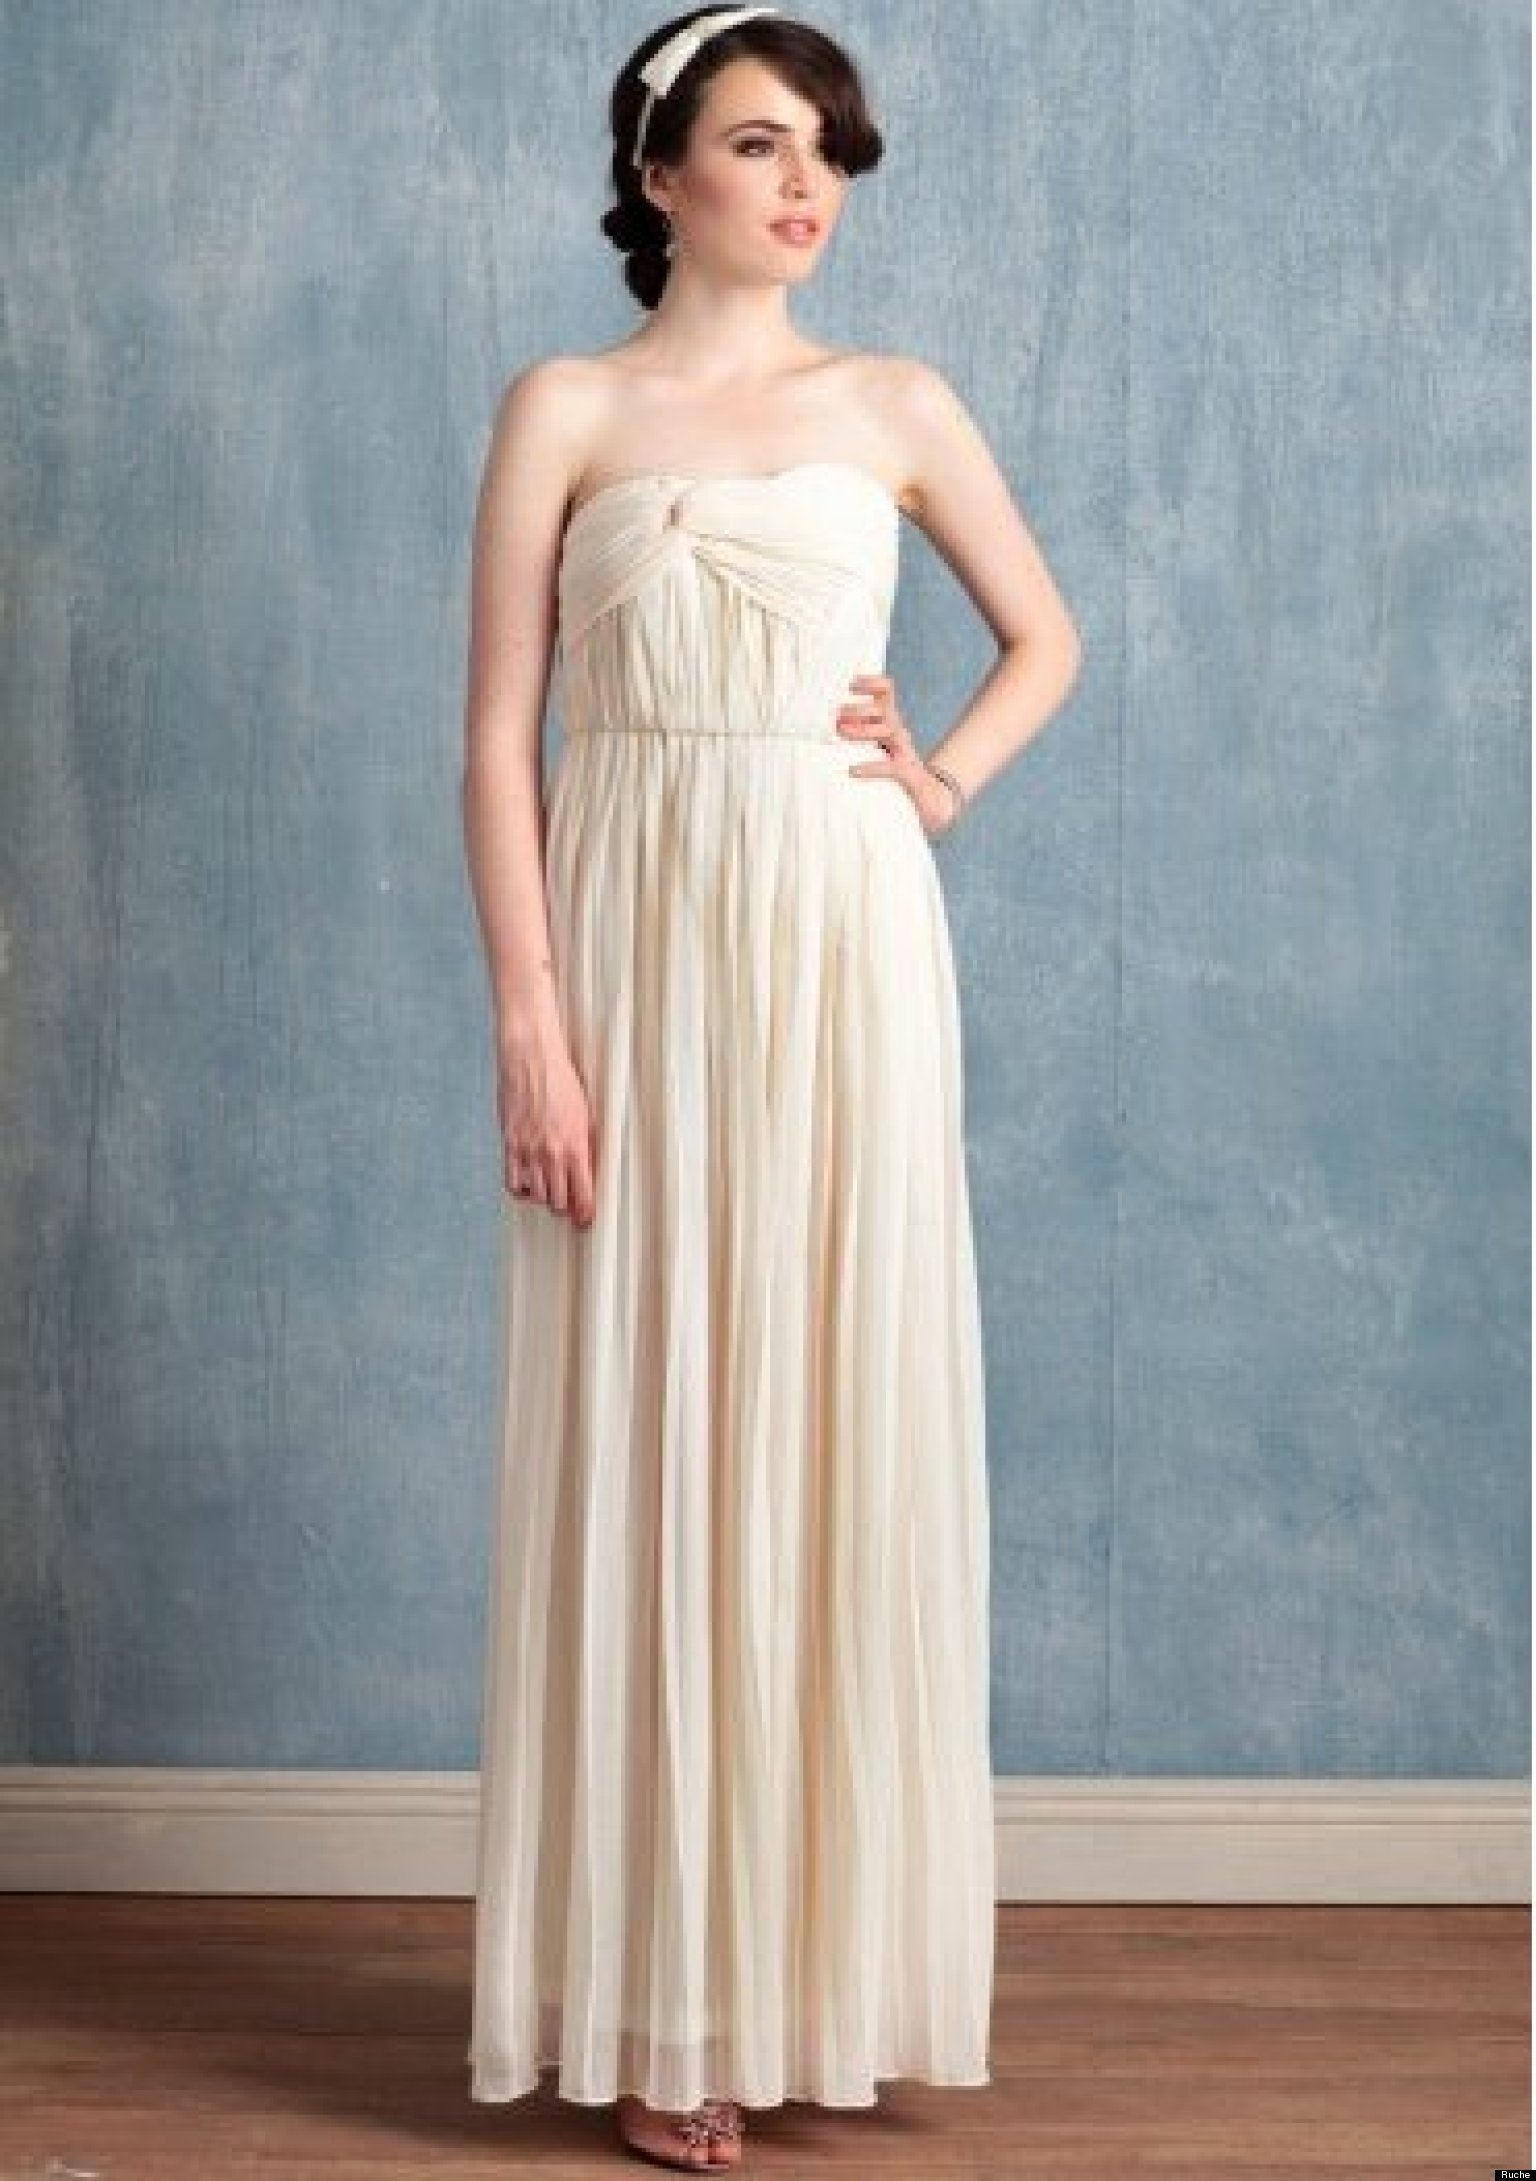 Cheap Wedding Dresses: Stylish Gowns For Less Than $250 (PHOTOS ...